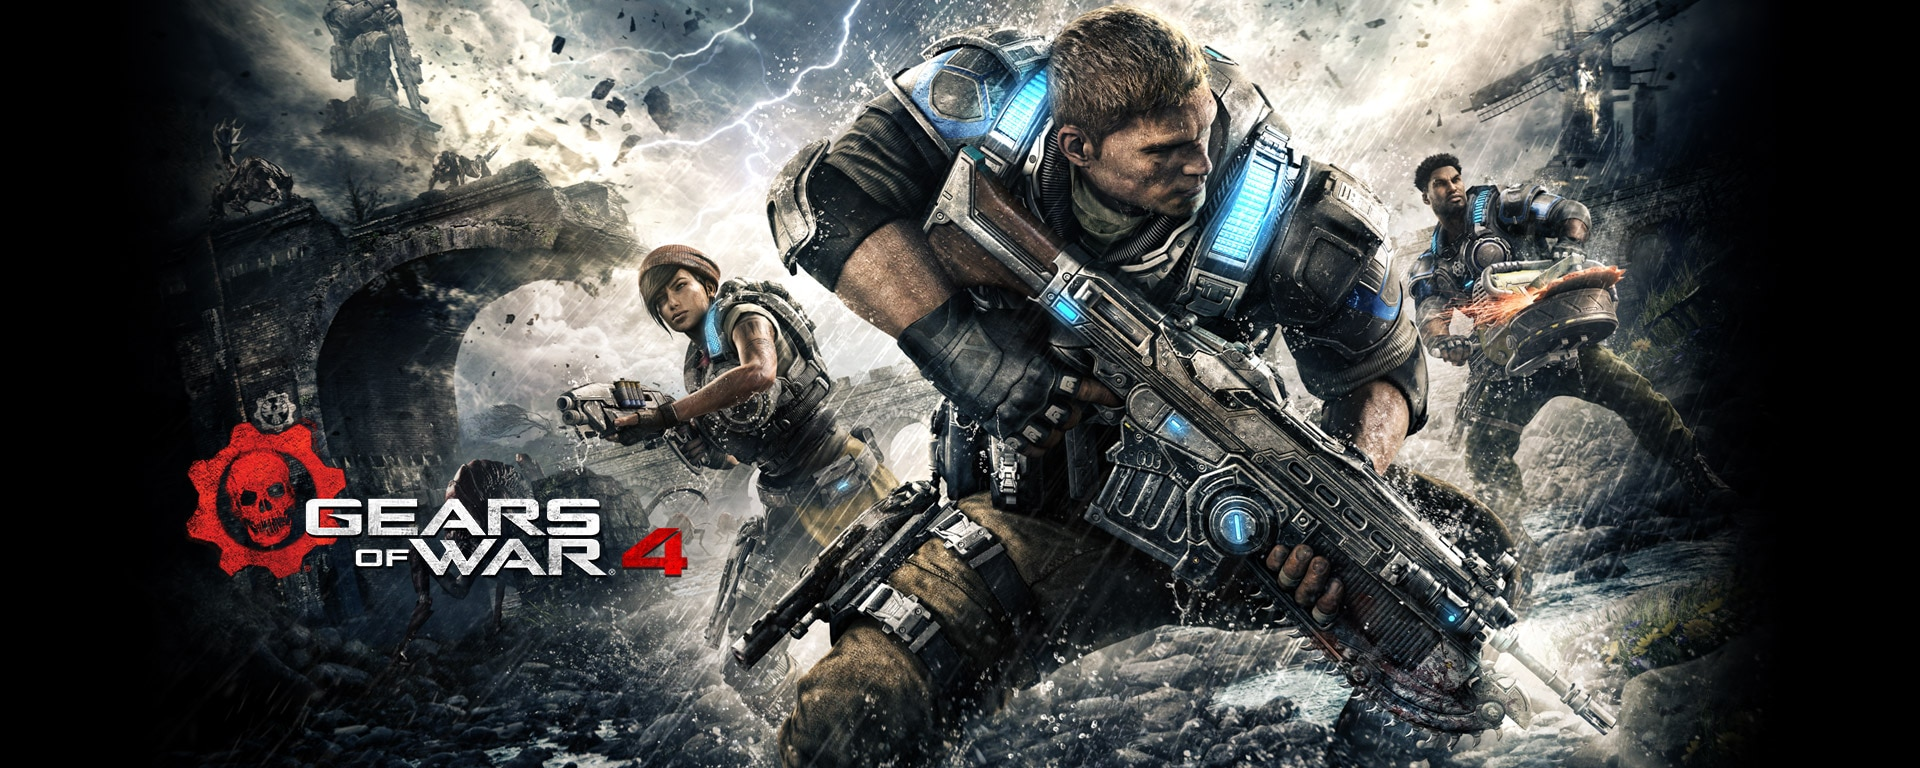 Gears of War 4 - E3 2016: Gears of War 4 Trailer Shoots Saw Blades and Lightning at Swarms of Monsters